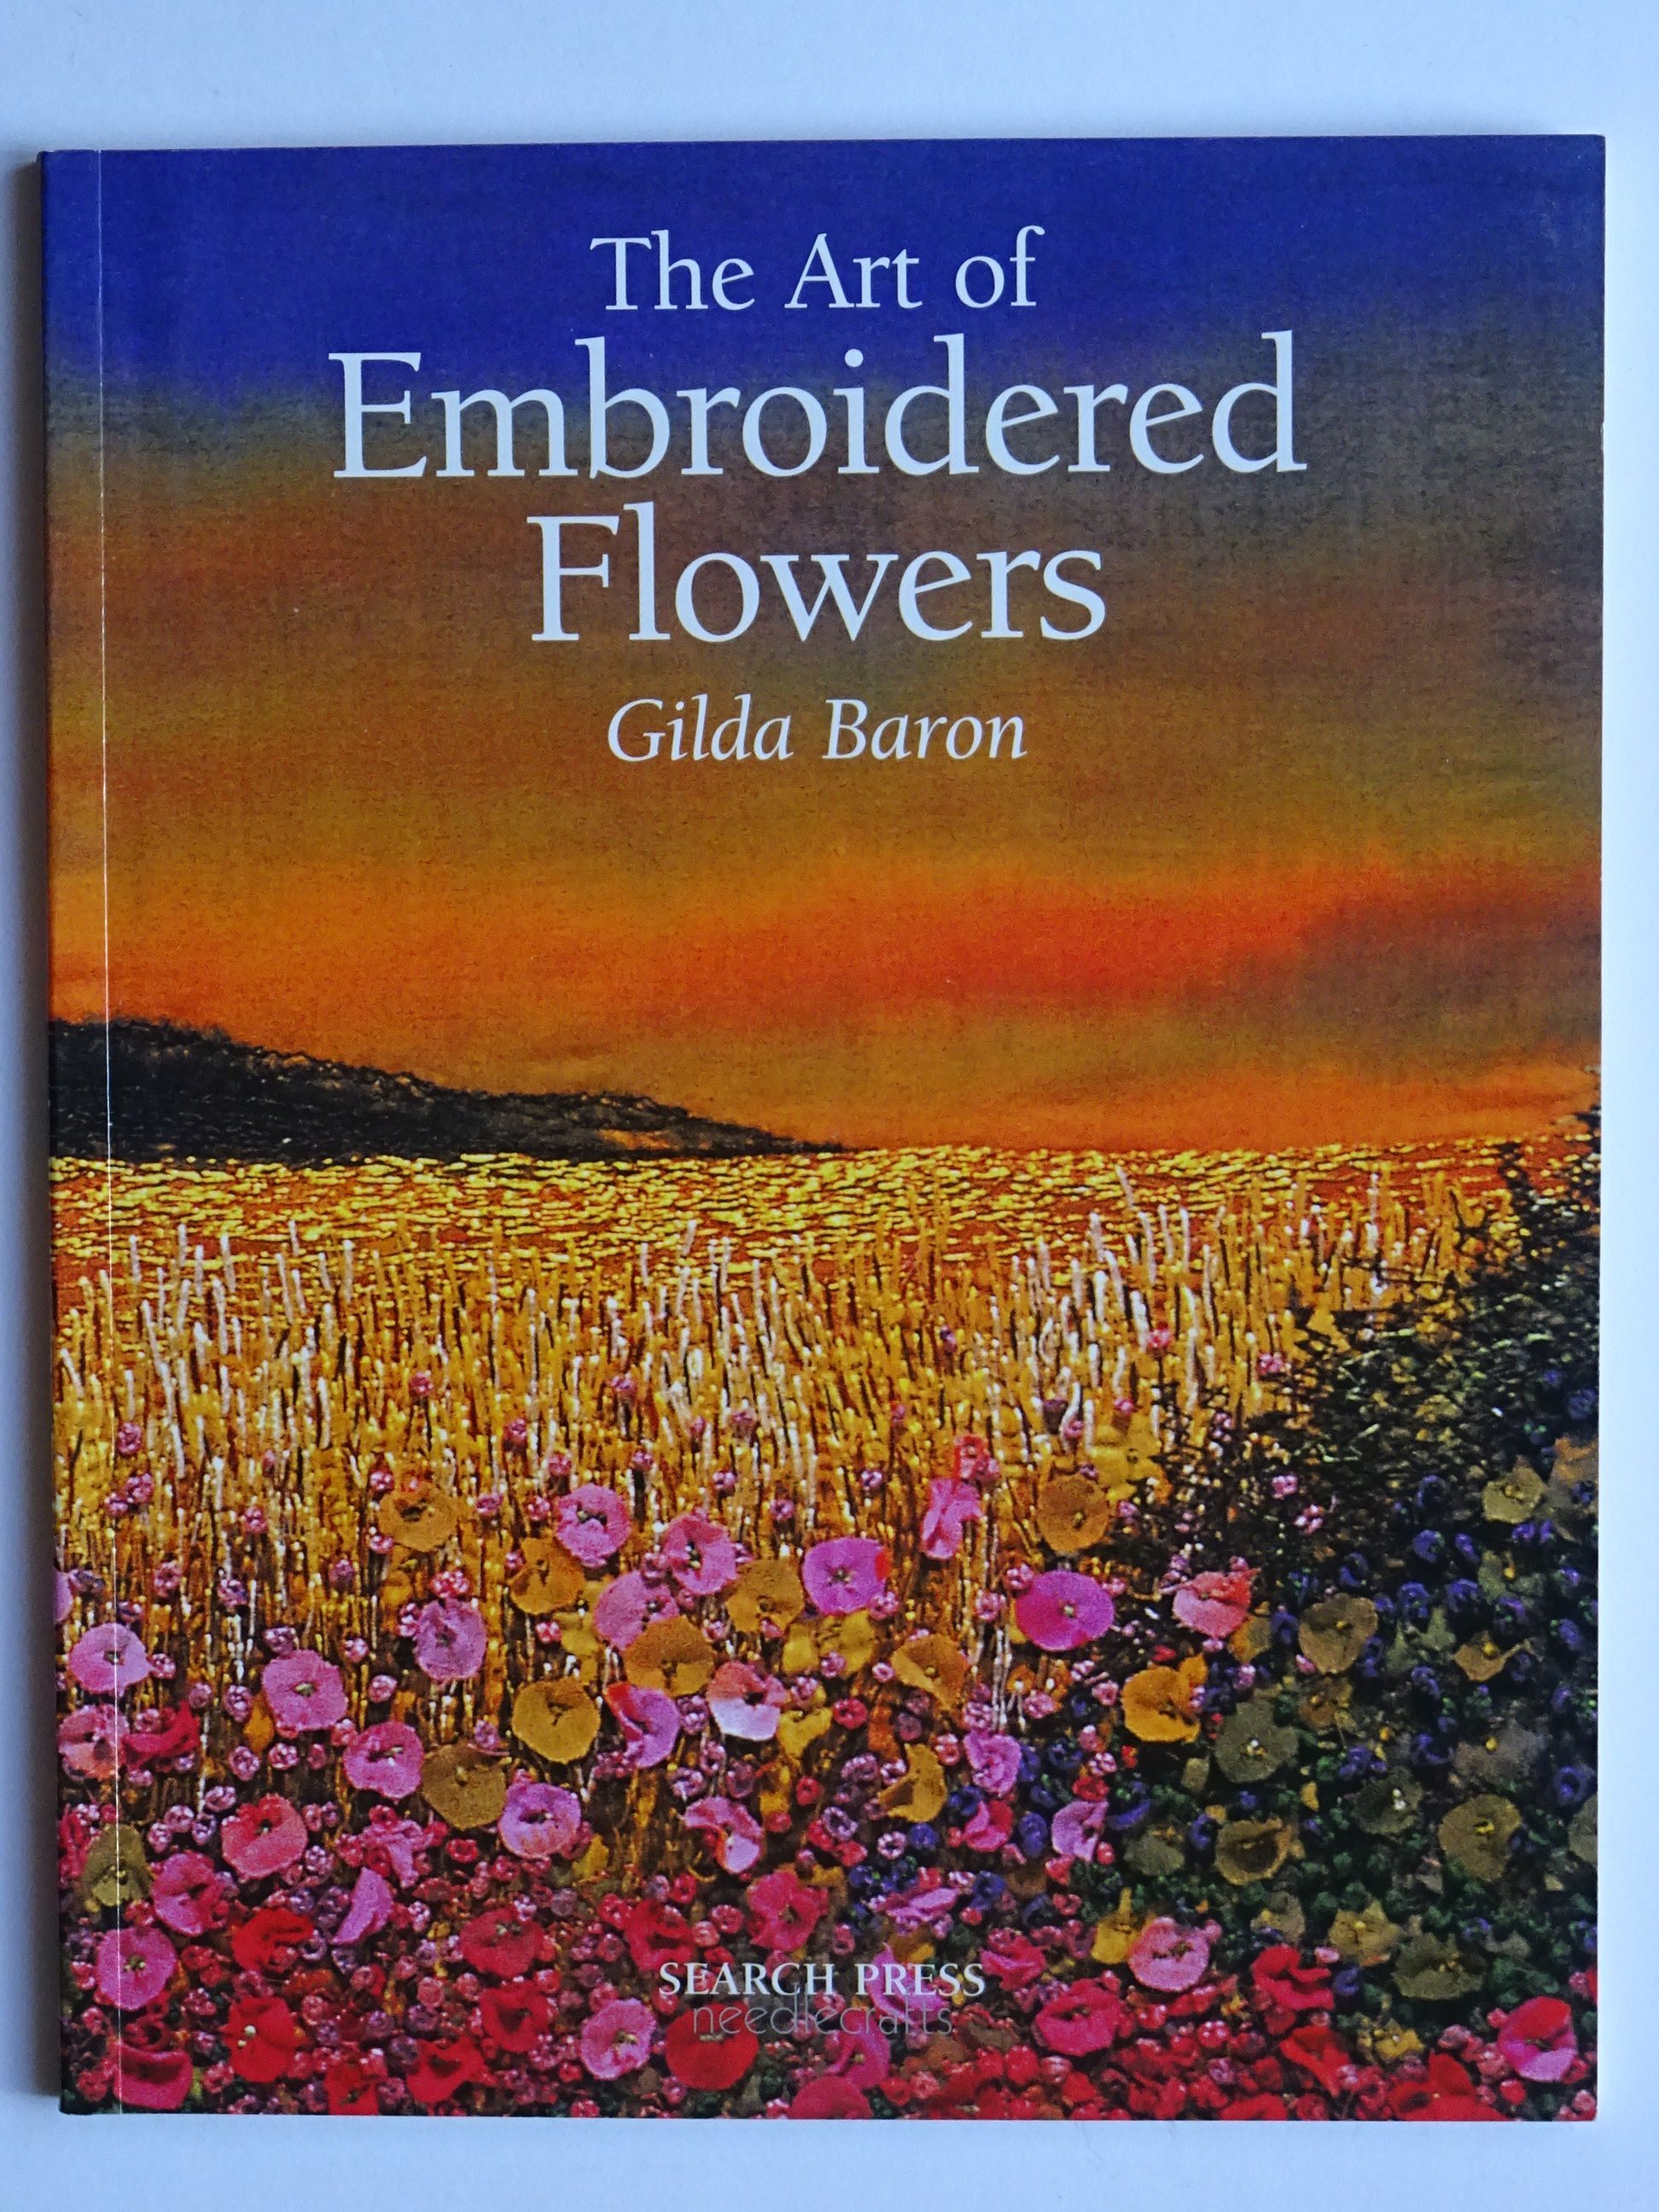 Baron, Gilda - The Art of Embroidered Flowers